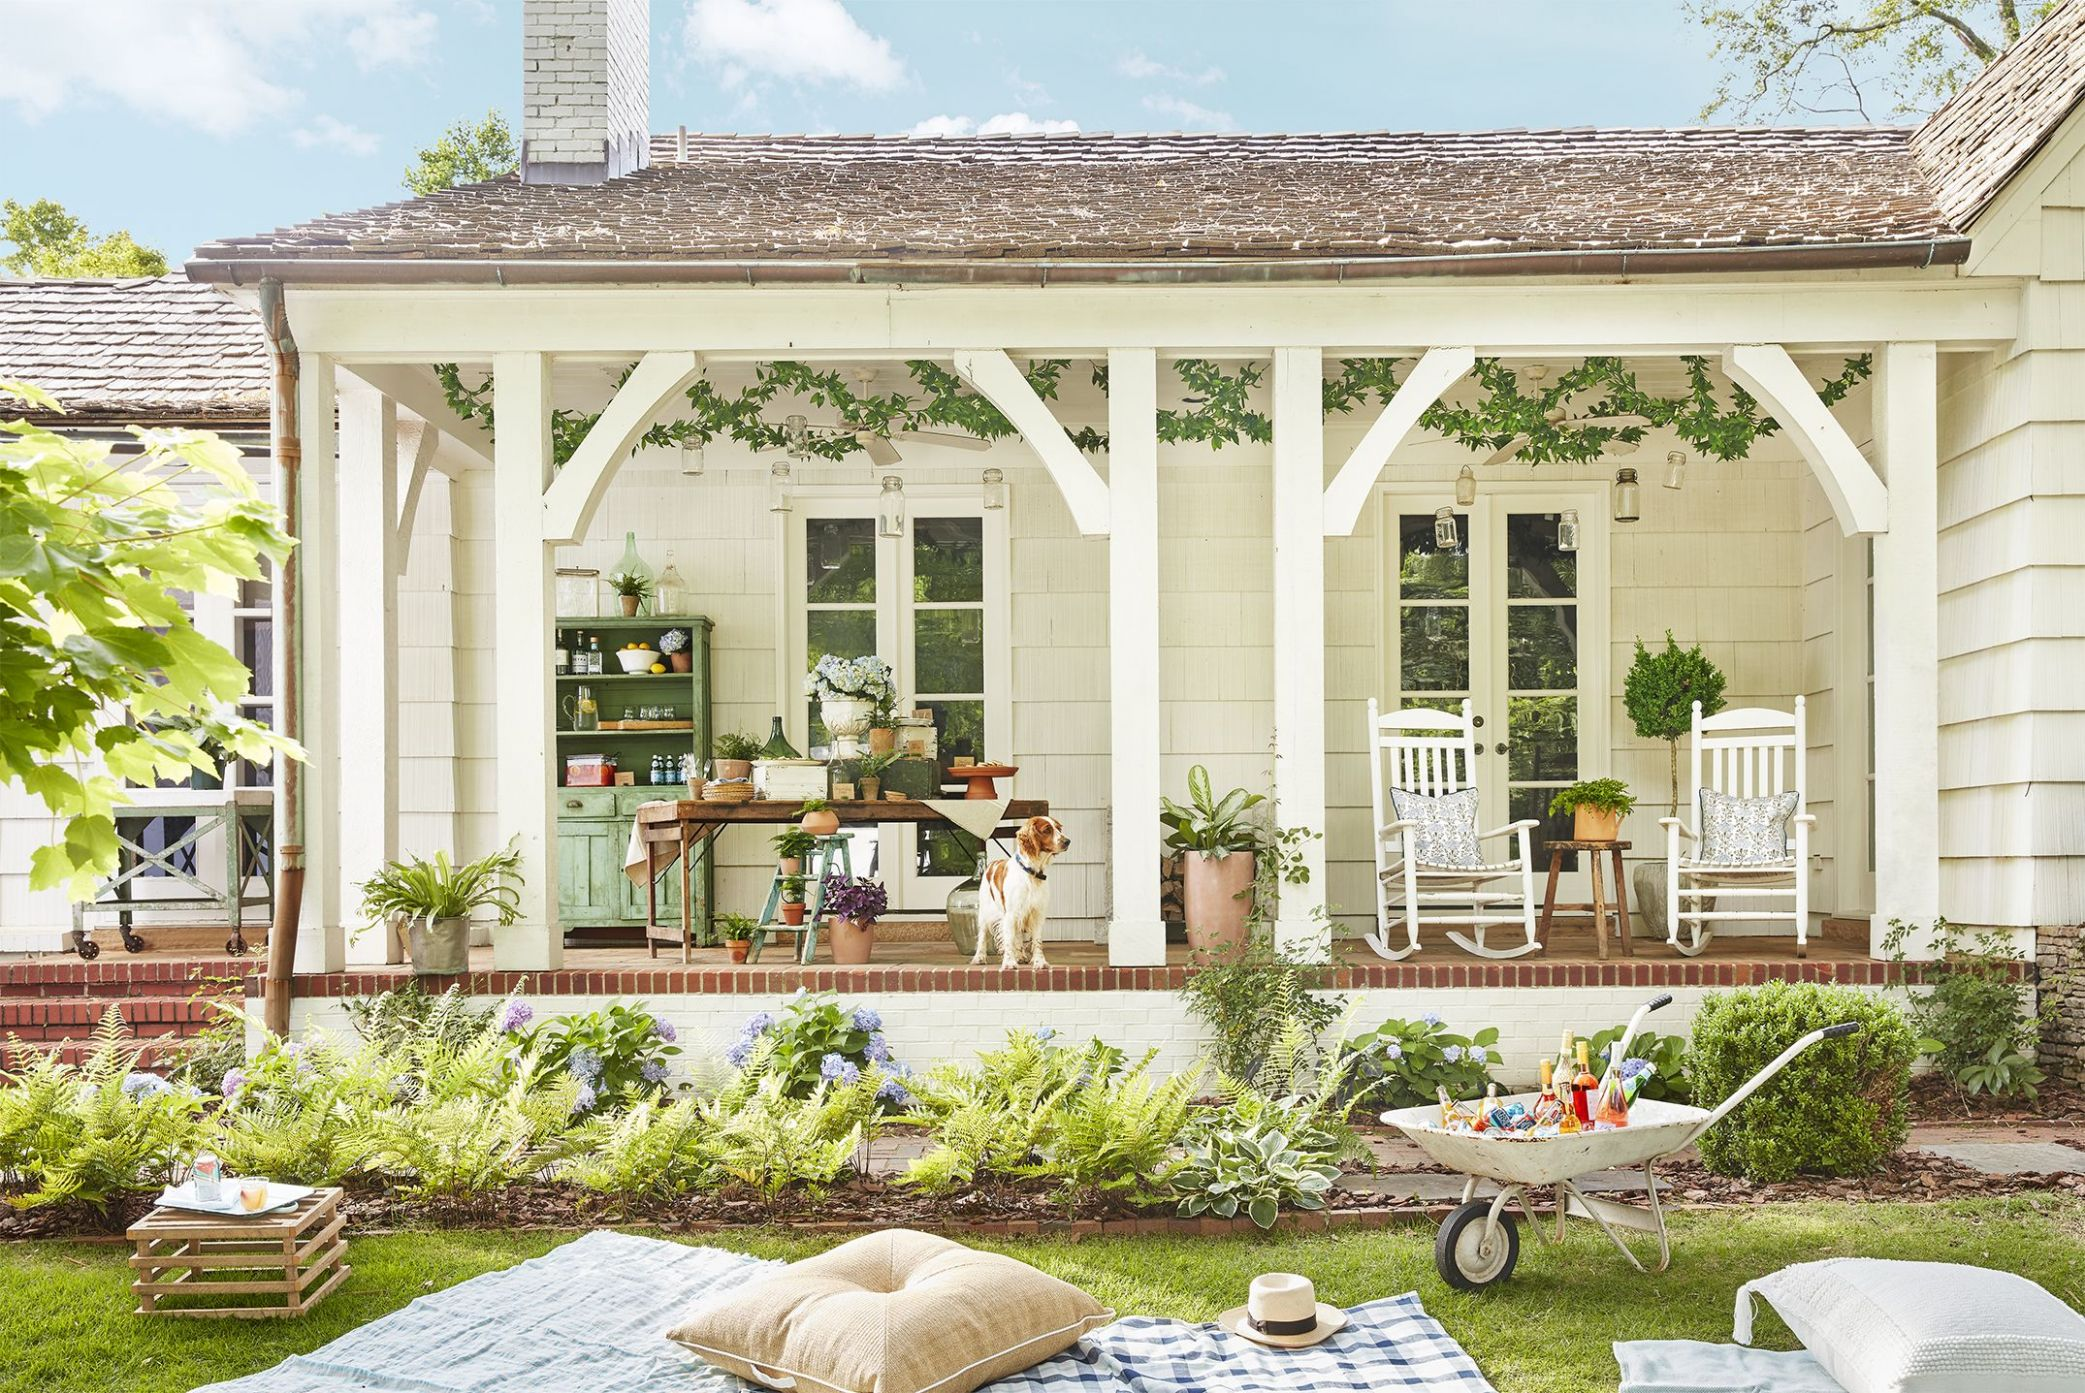 11 Best Front Porch Ideas - Ideas for Front Porch and Patio Decorating - front porch decor lake country